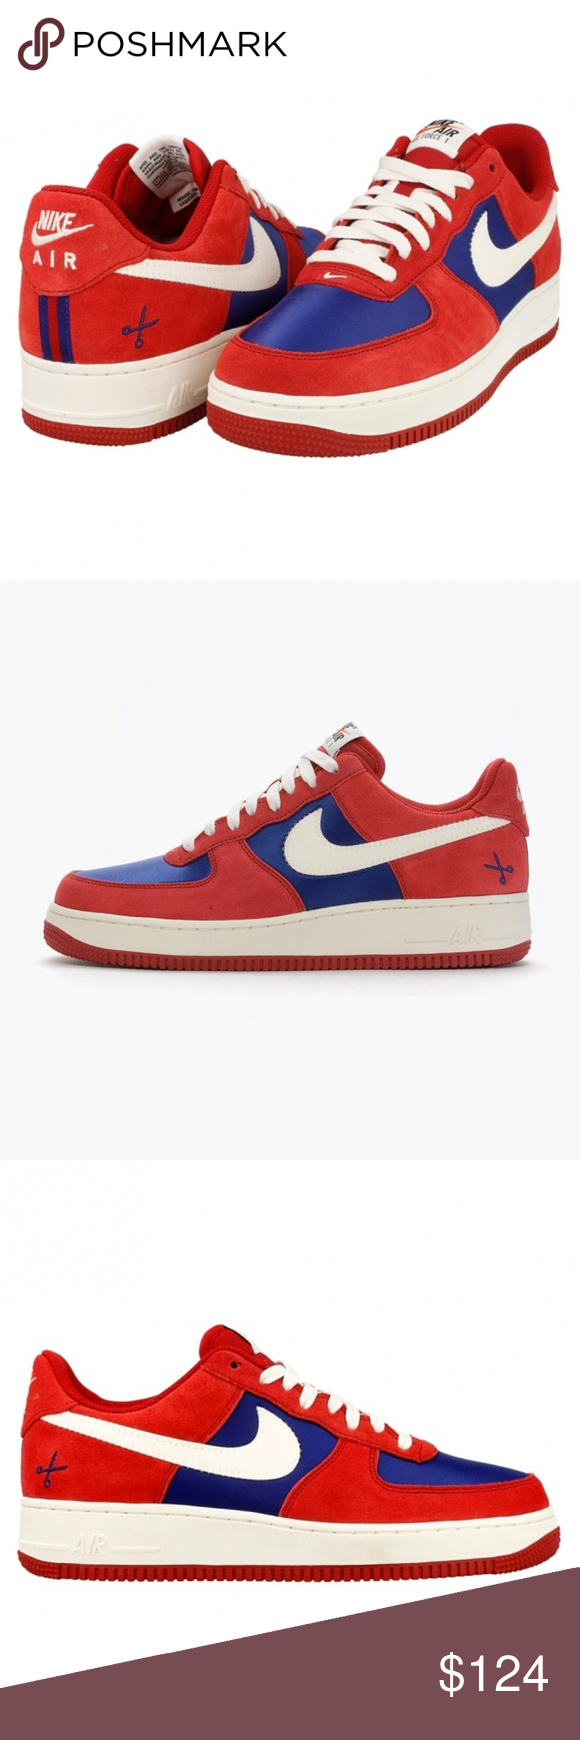 Nike Air Force 1 Low Barber Shop 10.5 2015 Classic Brand